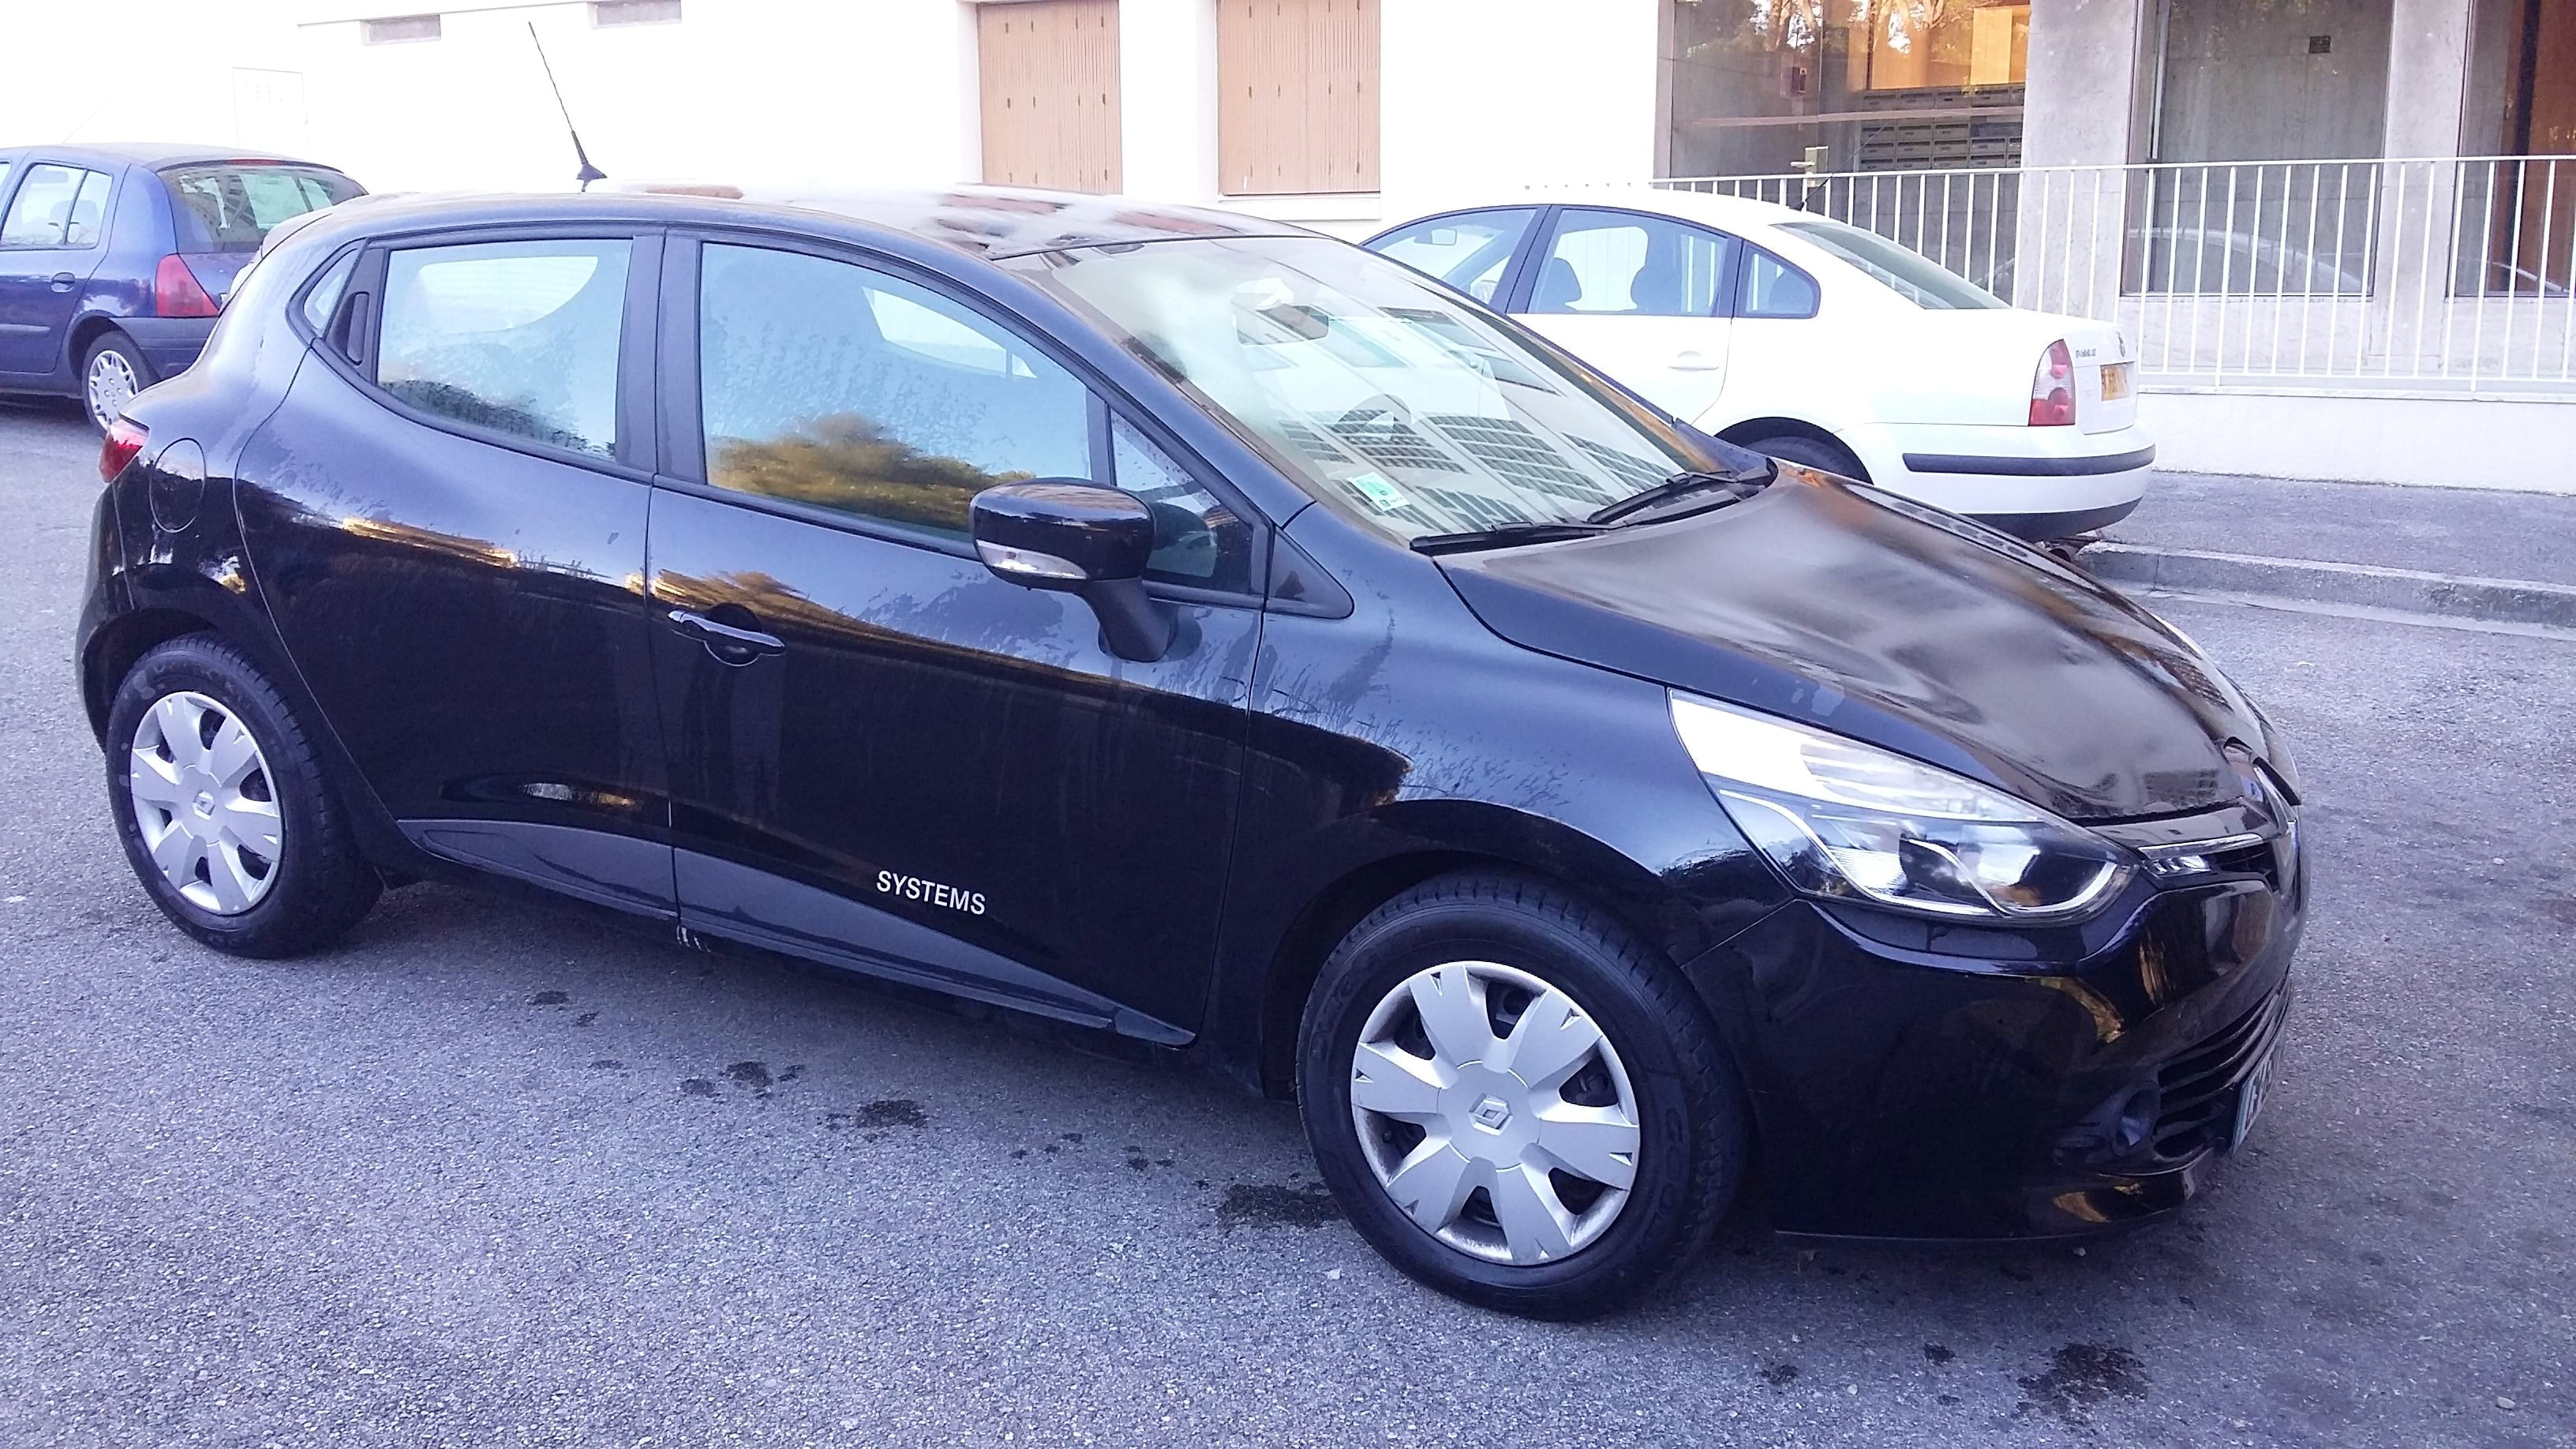 Renault Clio 4, 2013, Essence - Berline Marseille (13)